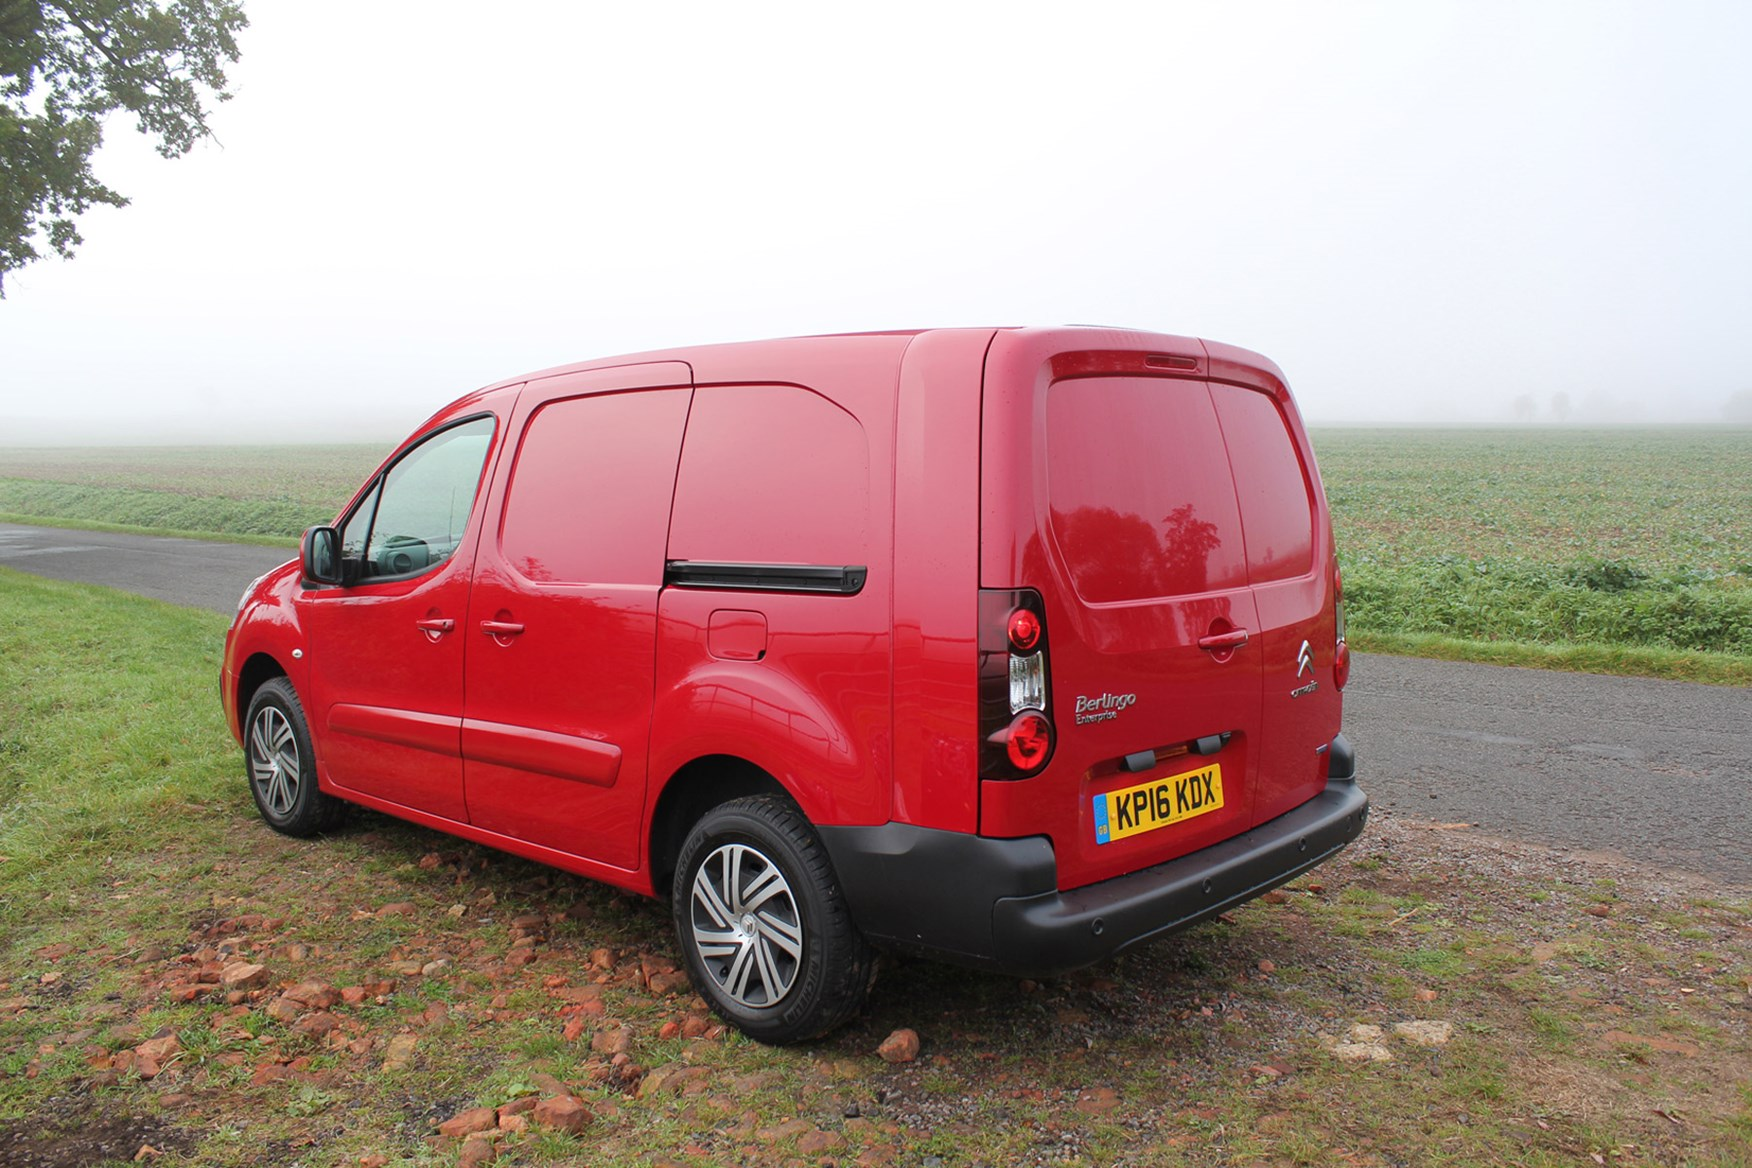 Citroen Berlingo full review on Parkers Vans - rear